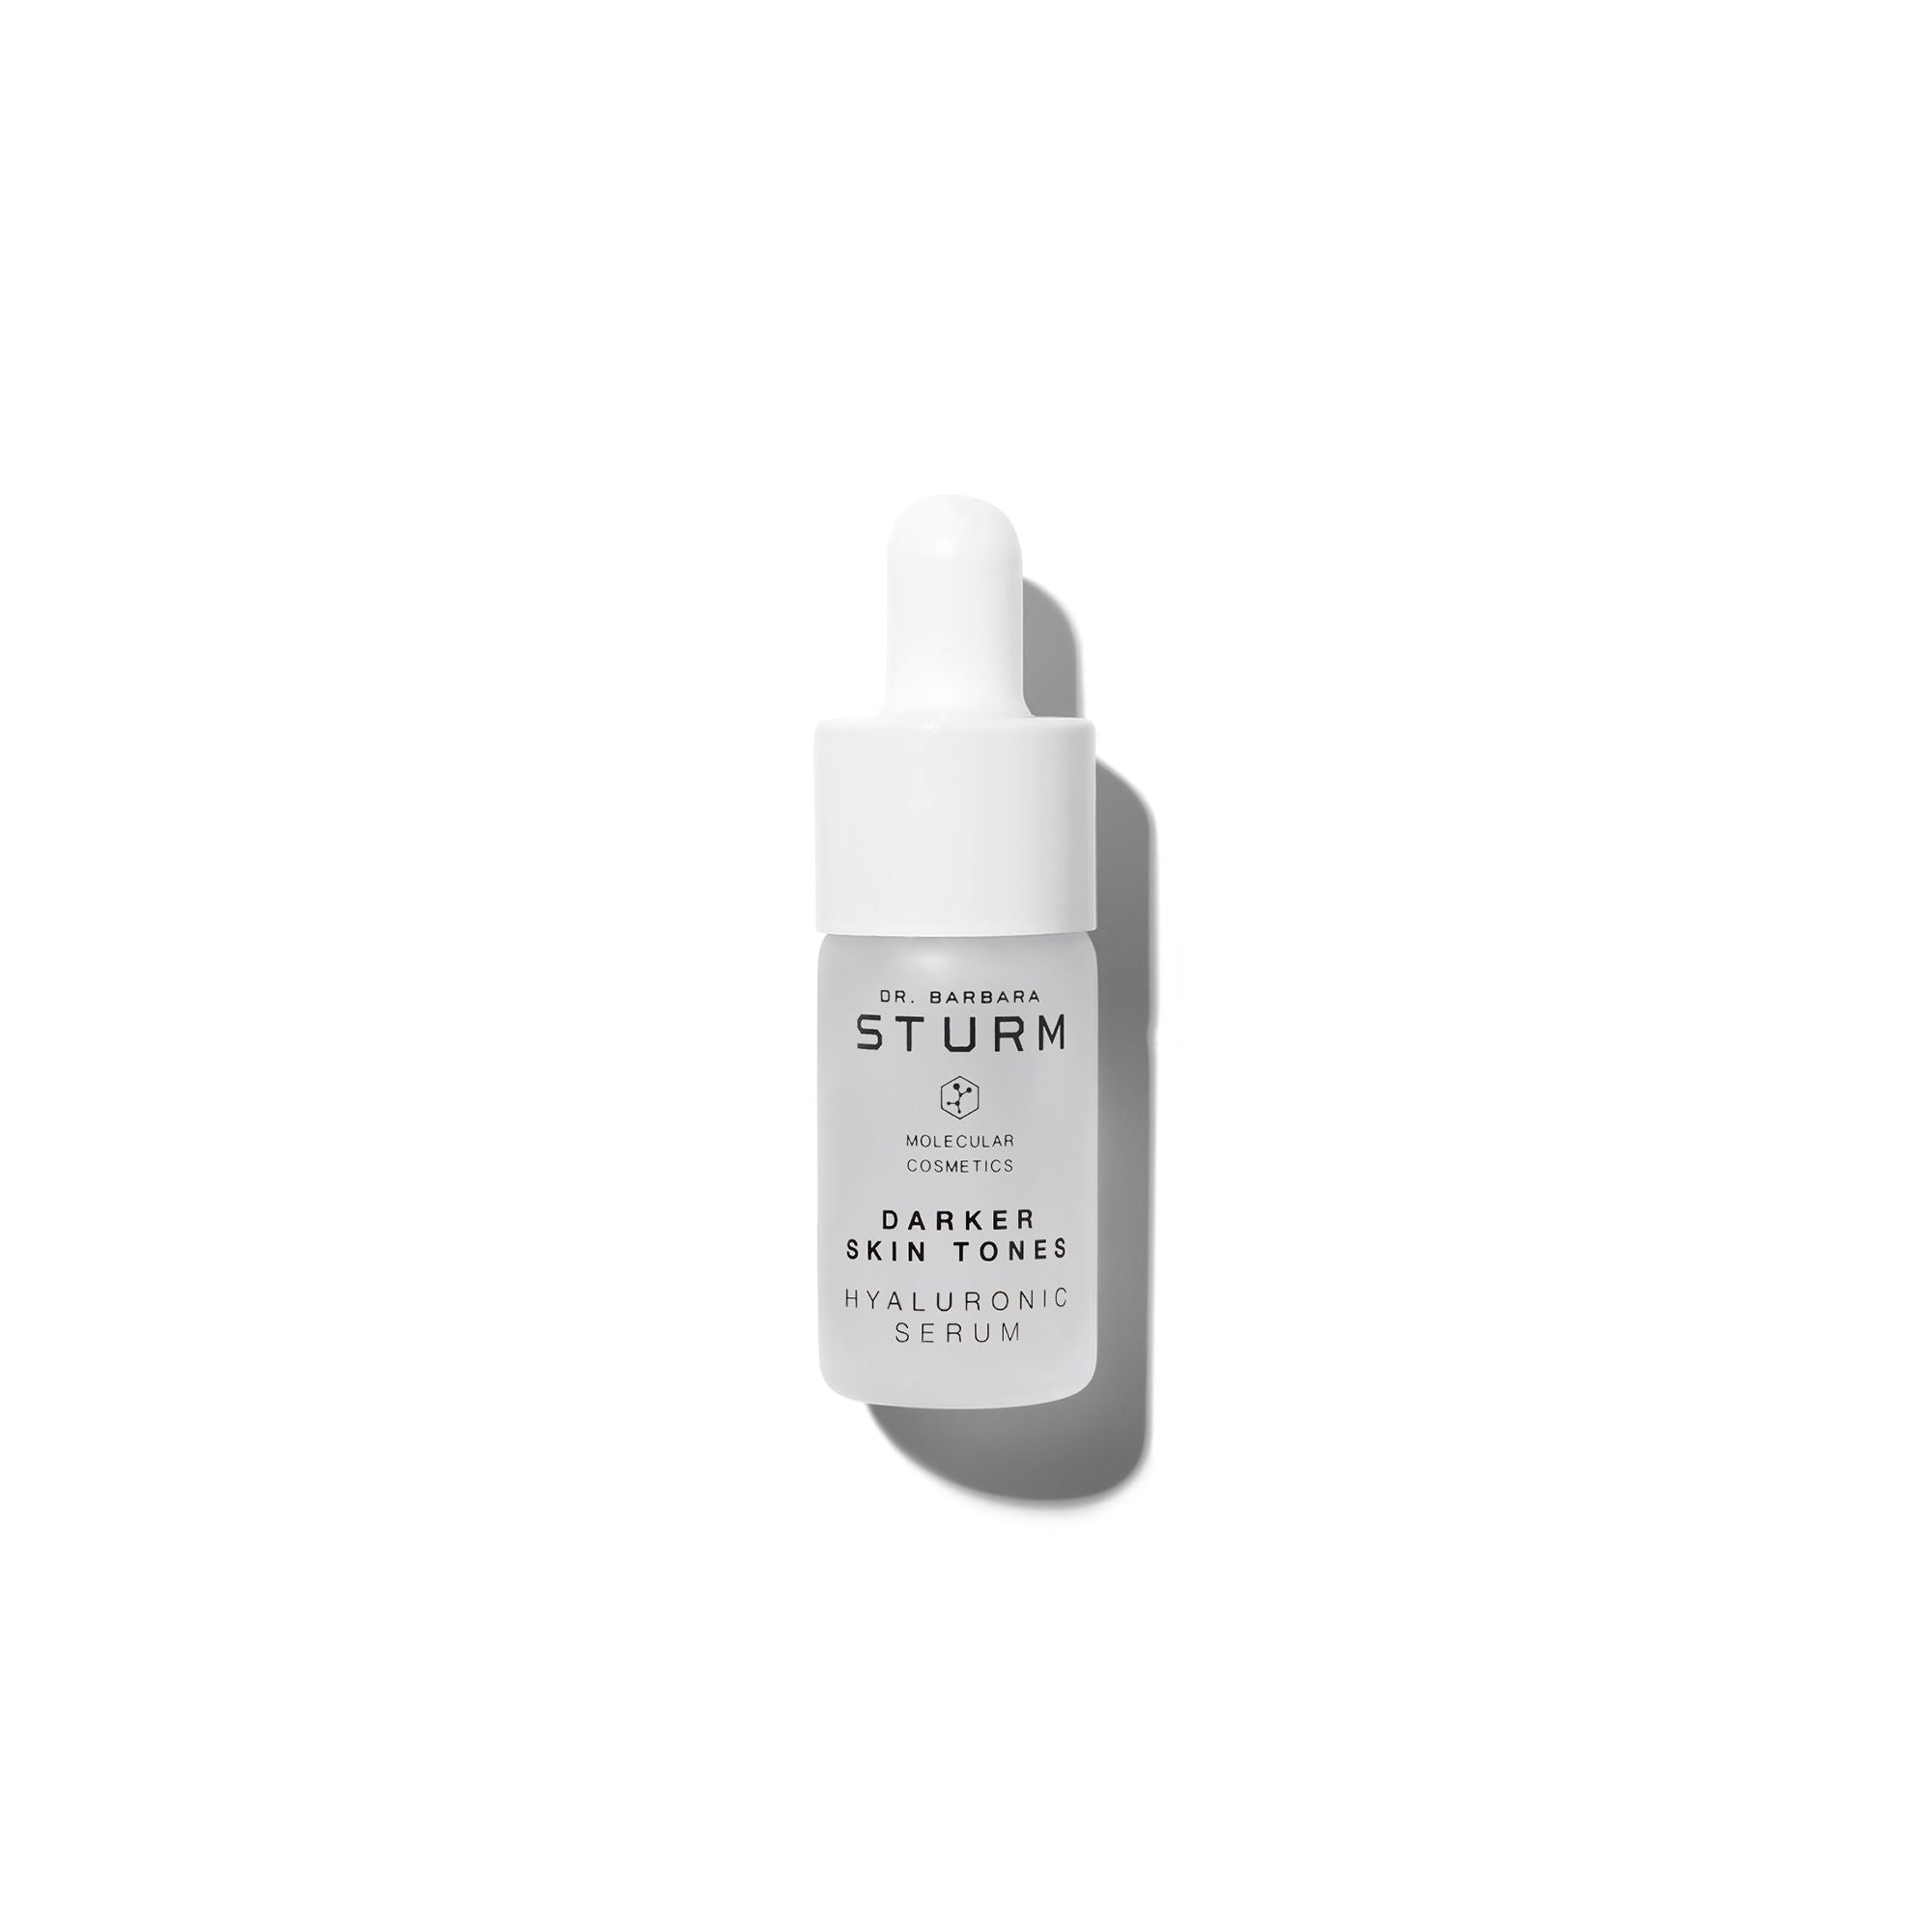 Buy Dr. Babara Sturm Darker Skin Tones Discovery Set wellness products from Delaire Graff Estate online store- Hyaluronic Serum